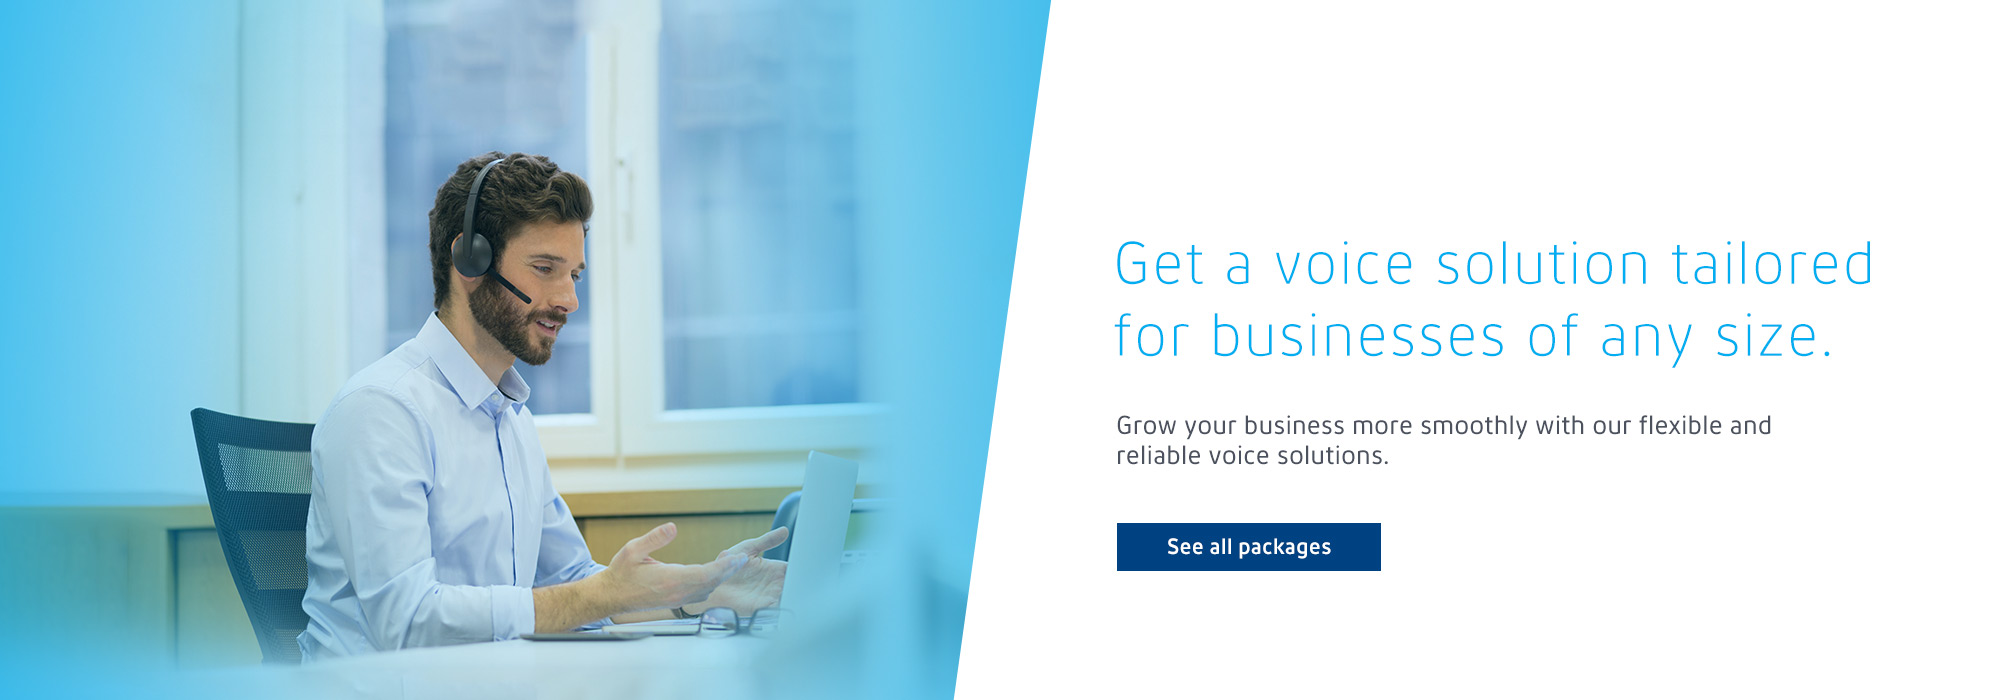 Get a voice solution tailored for businesses of any size.